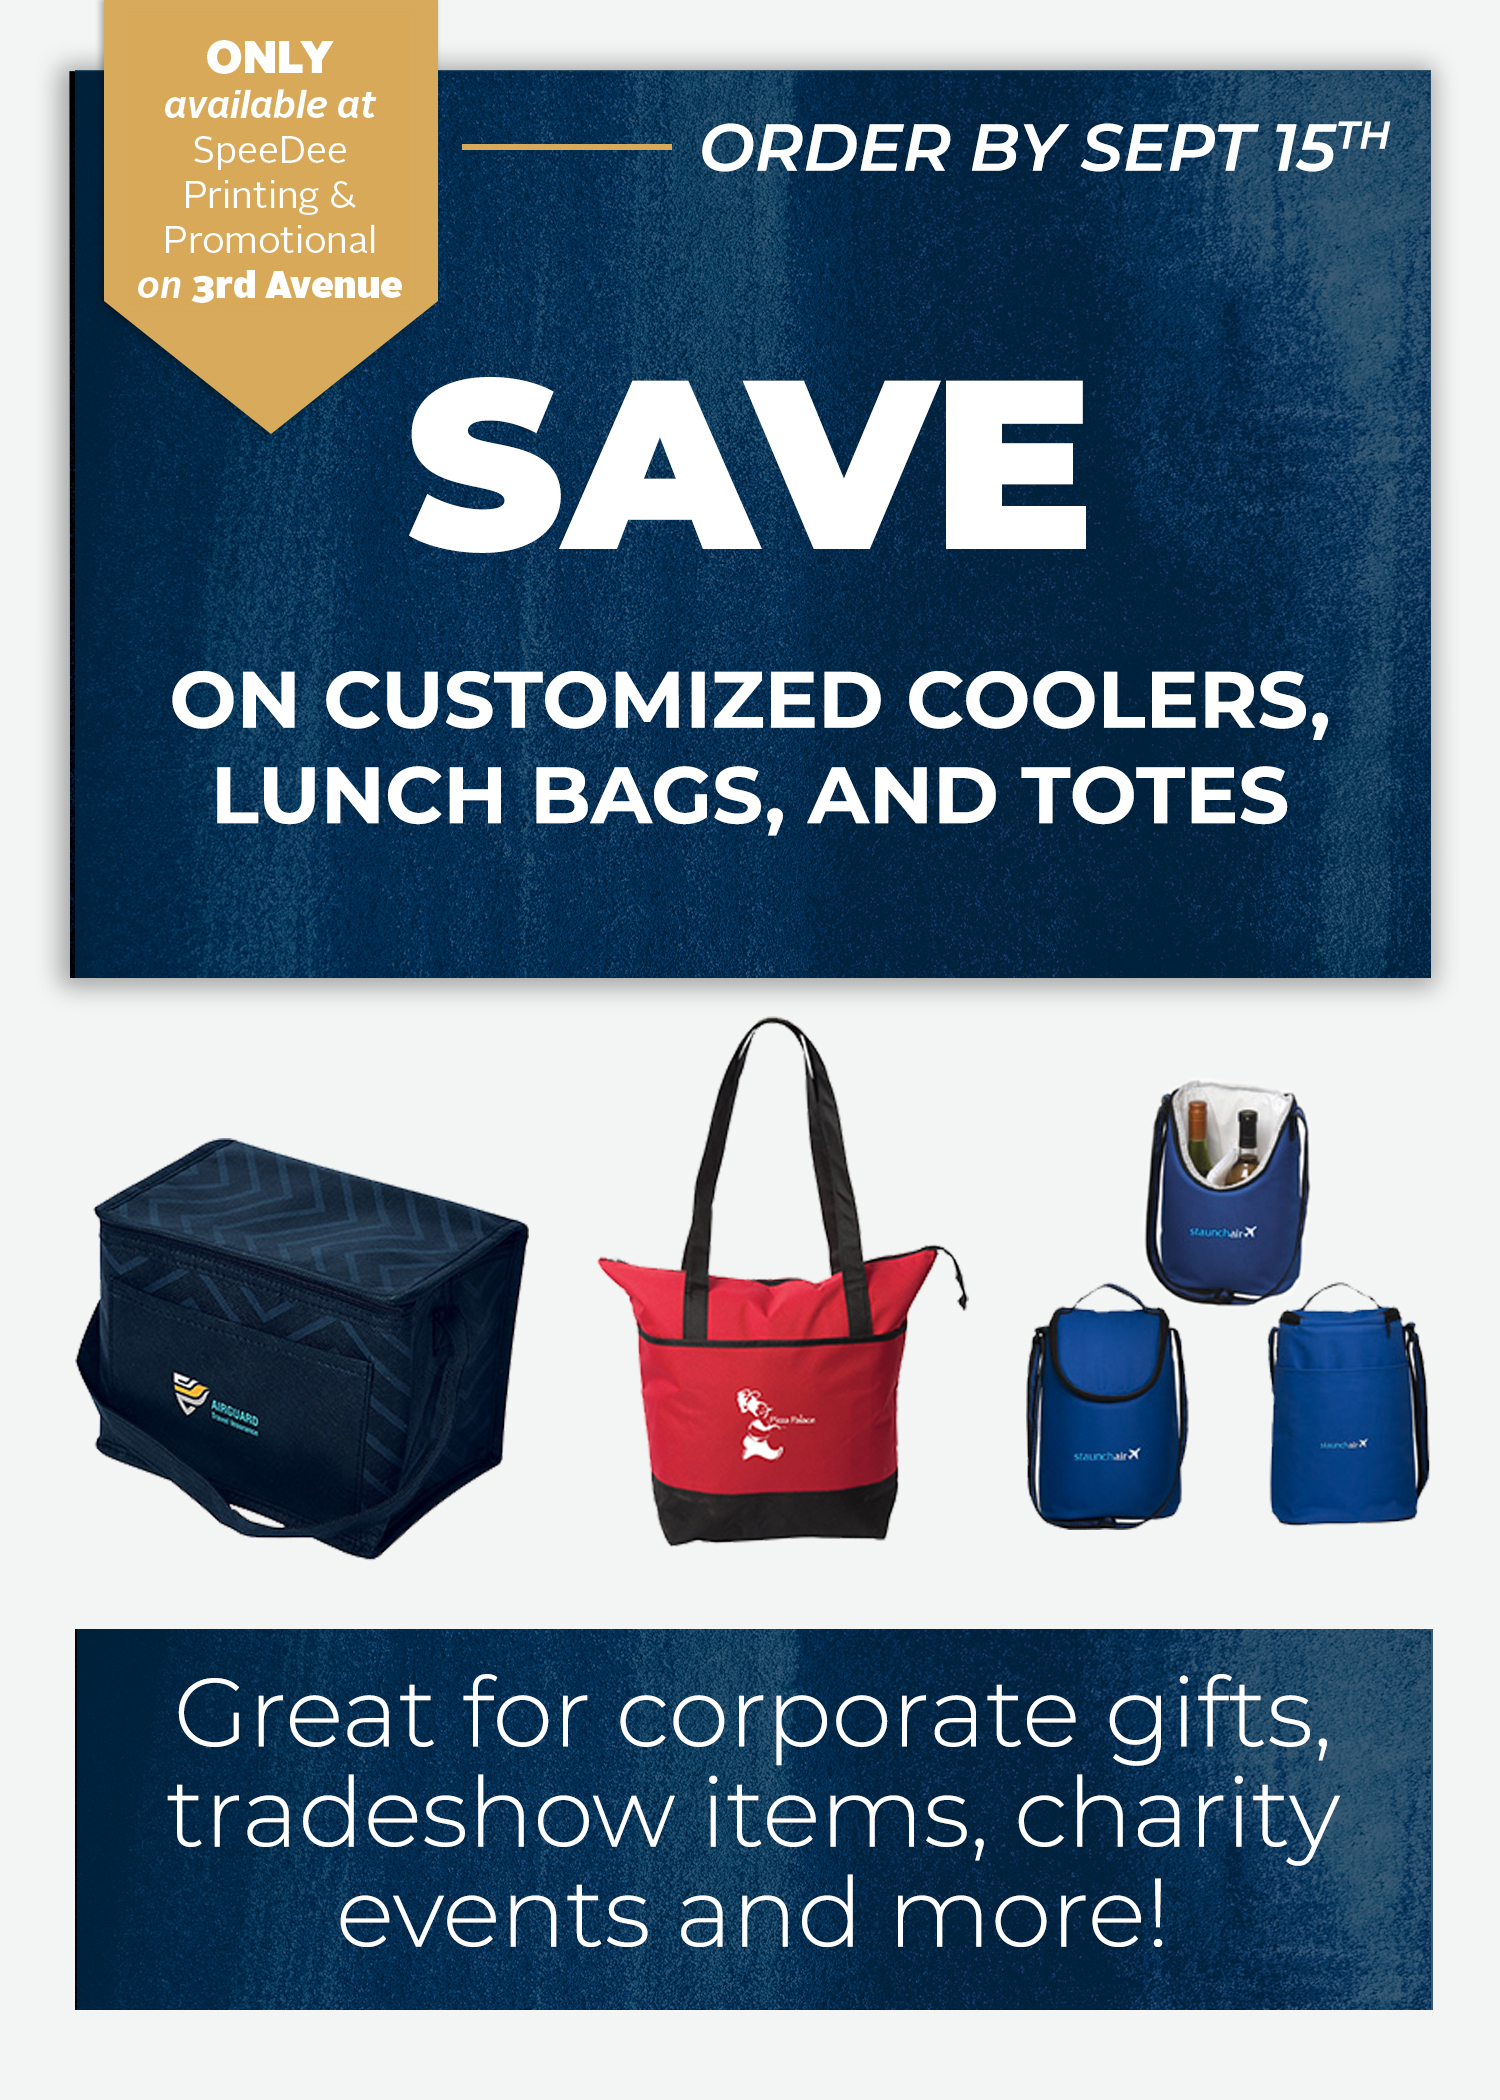 Speedee Printing and Promotional flyer reading save on customized coolers, lunch bags, and totes